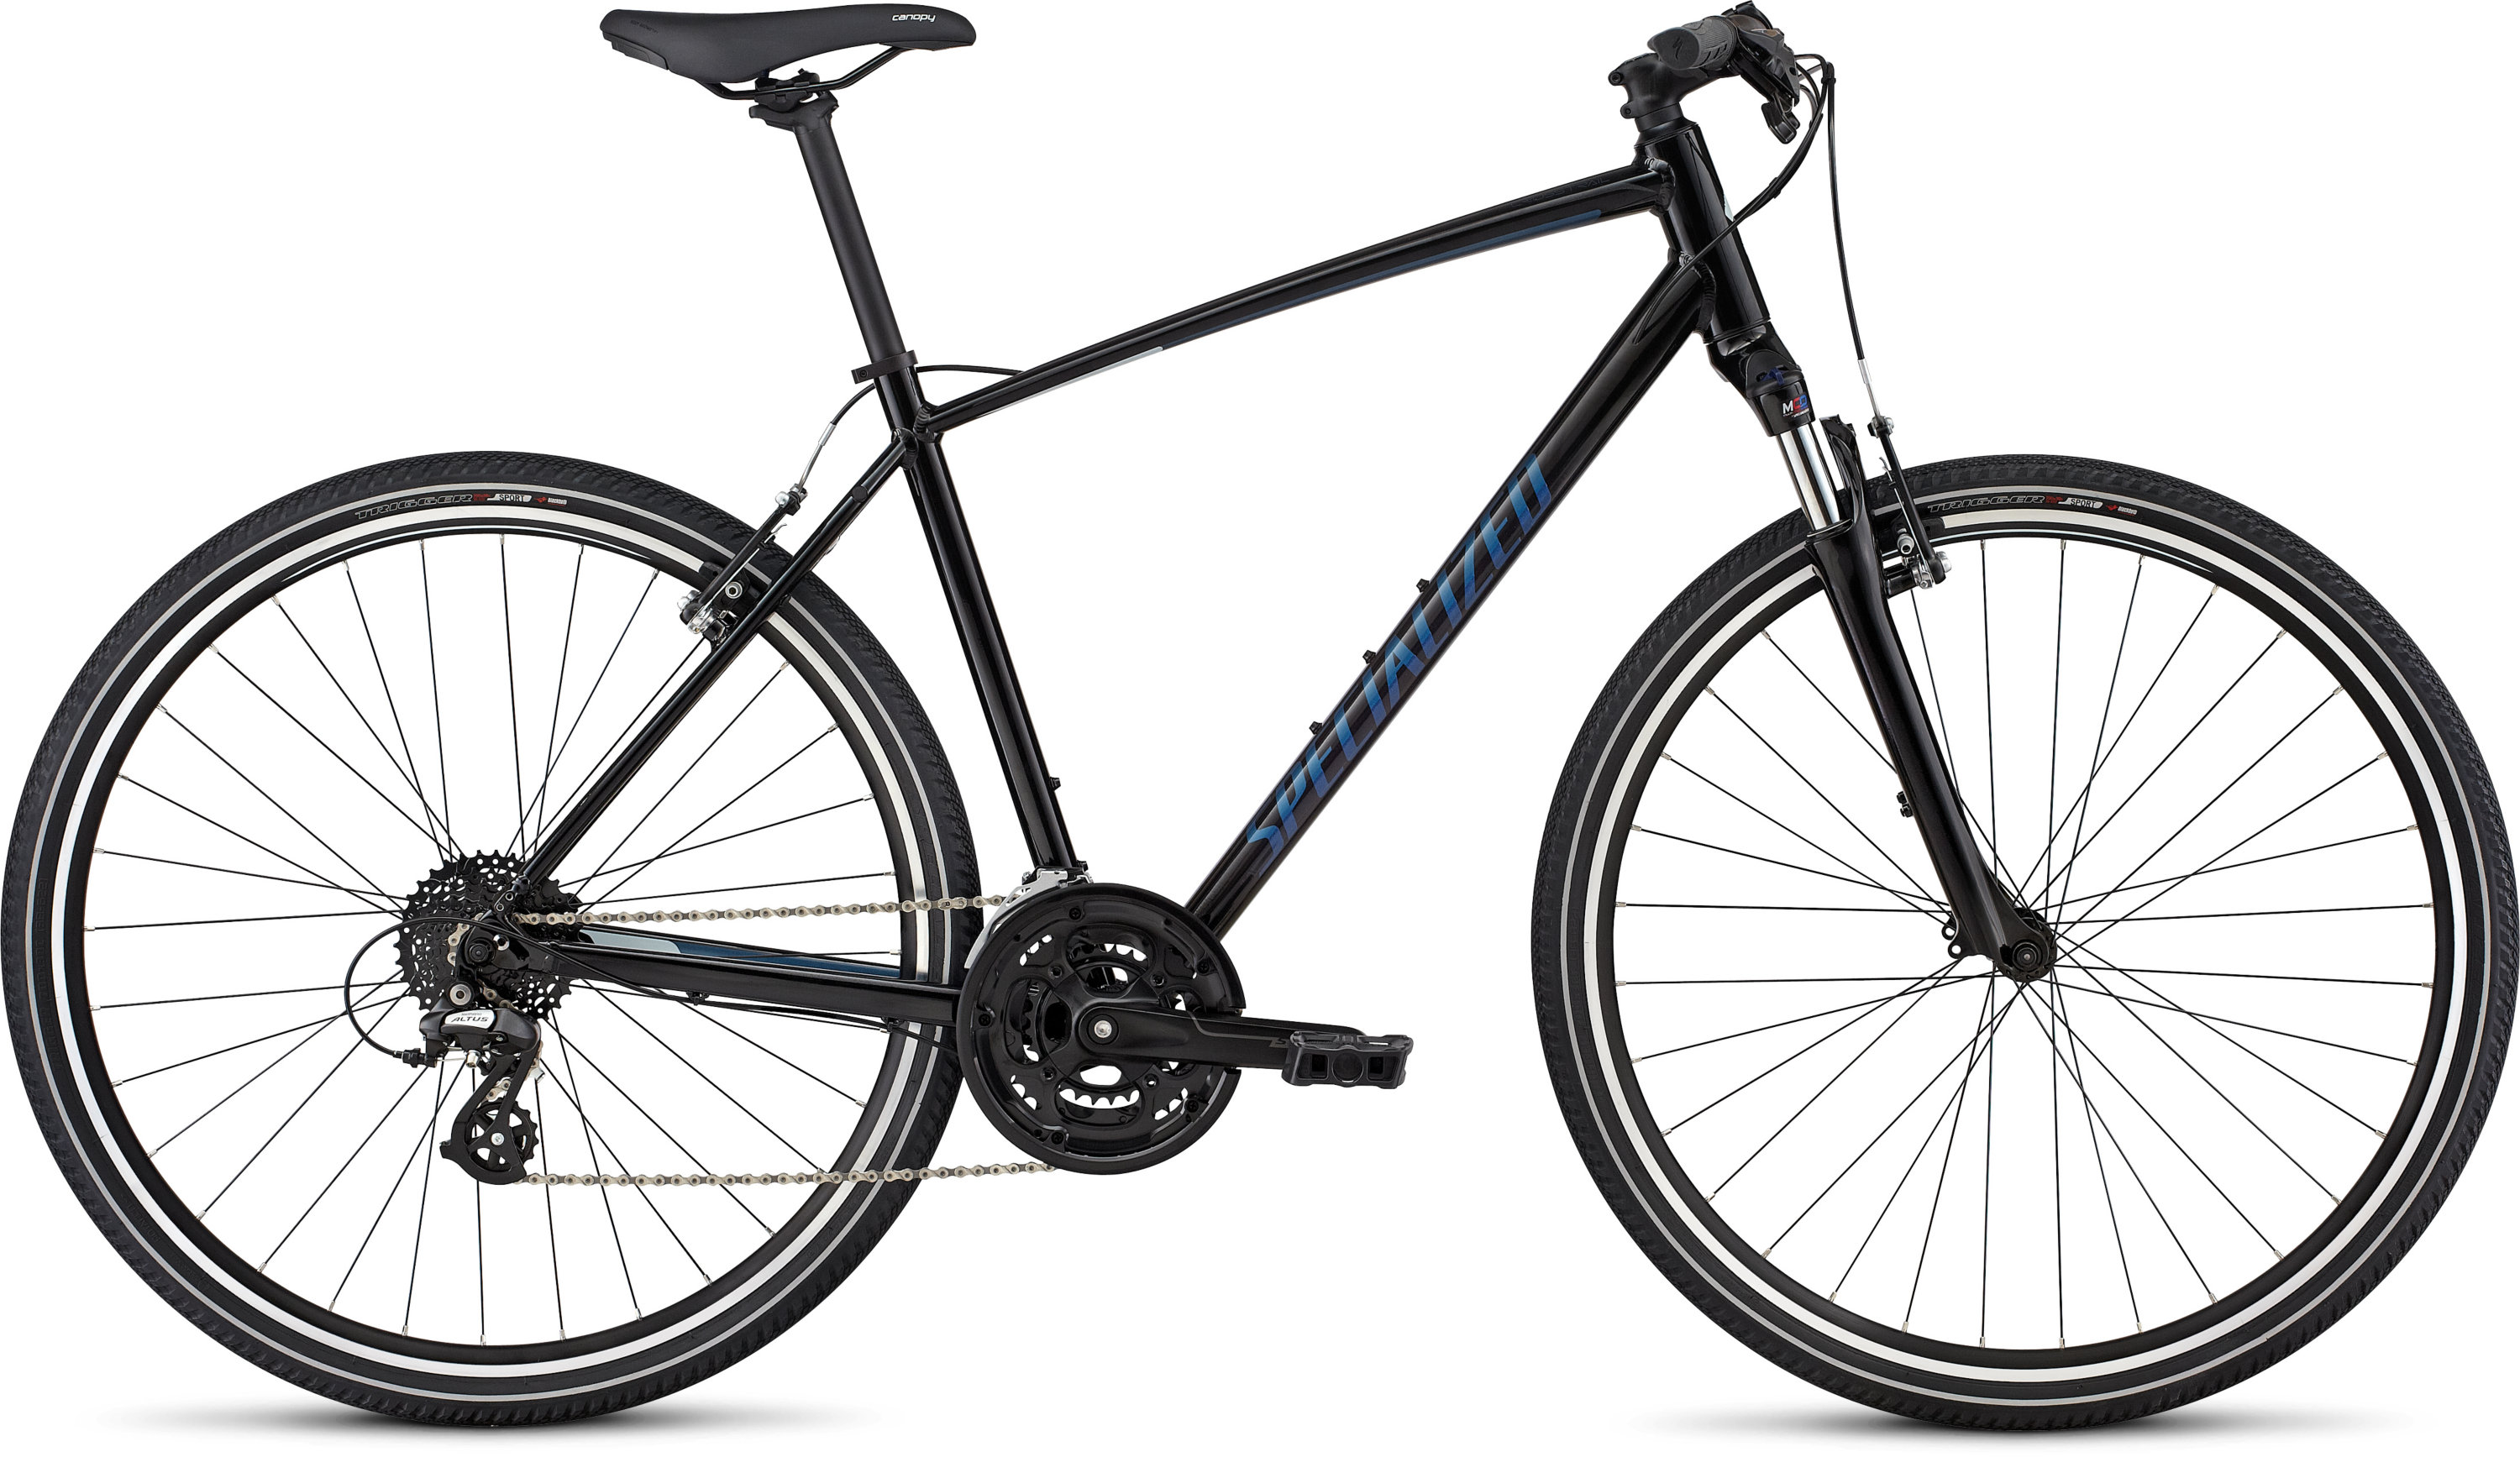 SPECIALIZED CT RIM INT TARBLK/CBRBLU/BBYBLU S - Bike Maniac